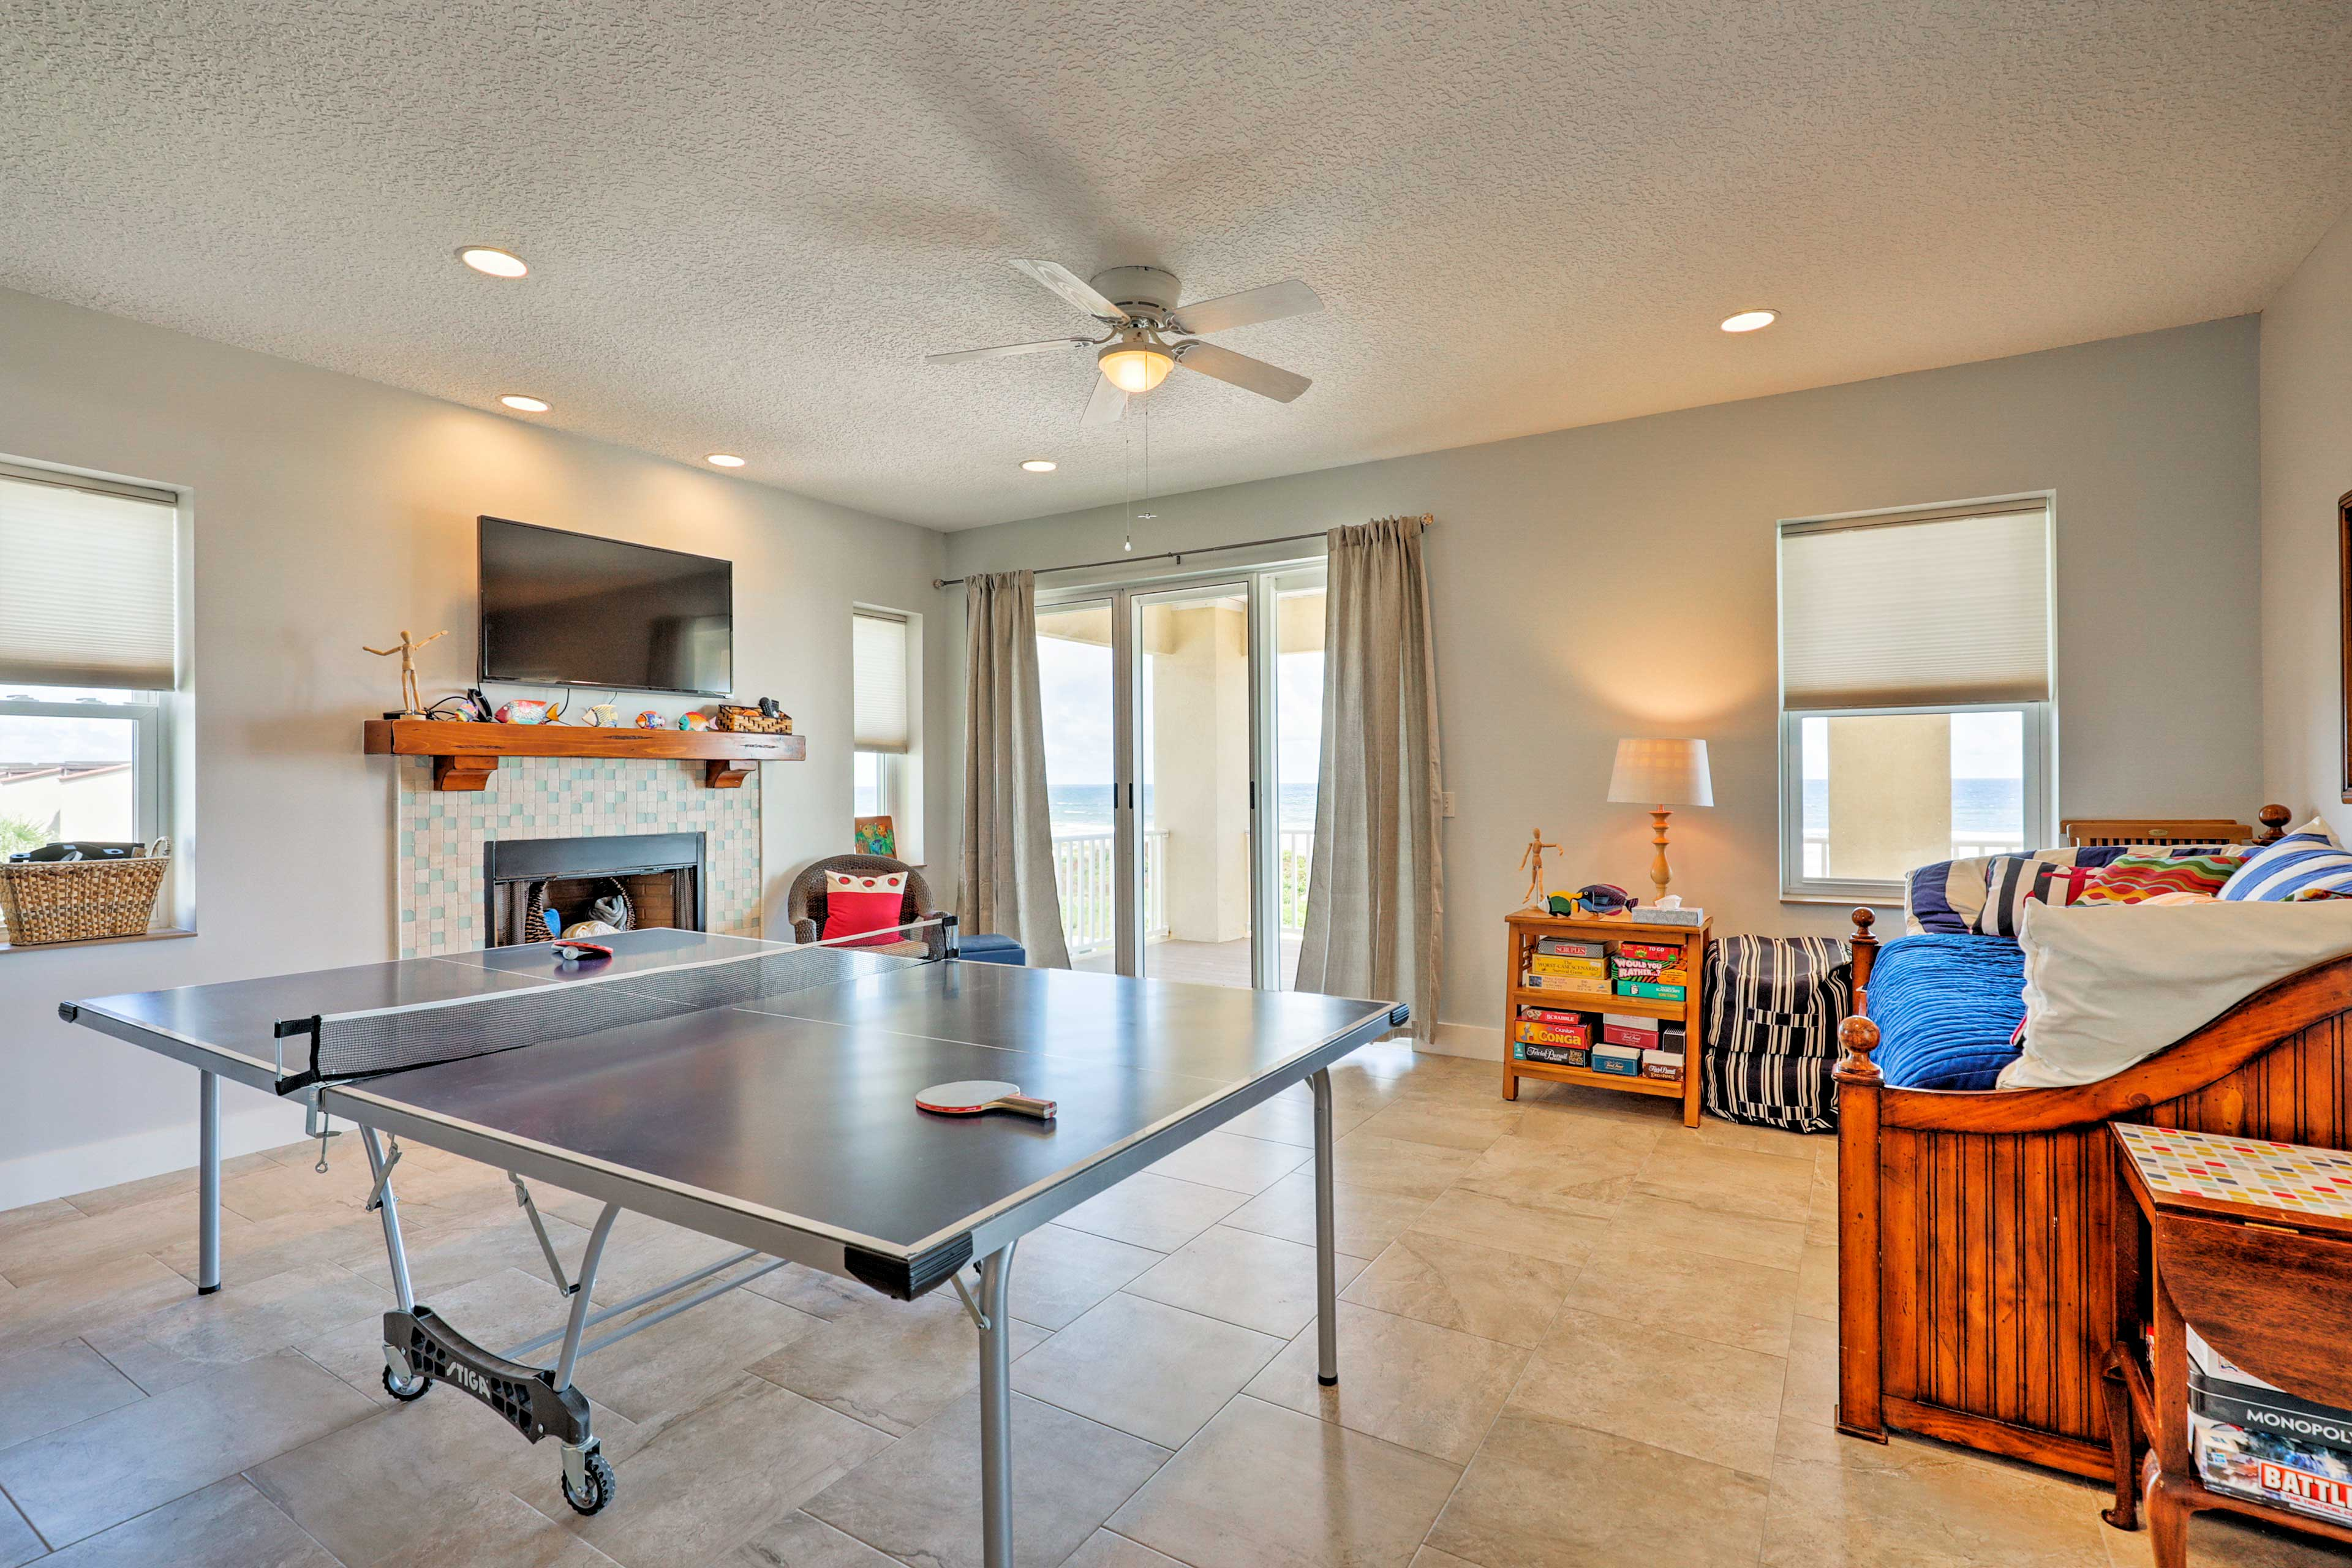 Challenge your friends to a friendly game of ping pong on the third floor.